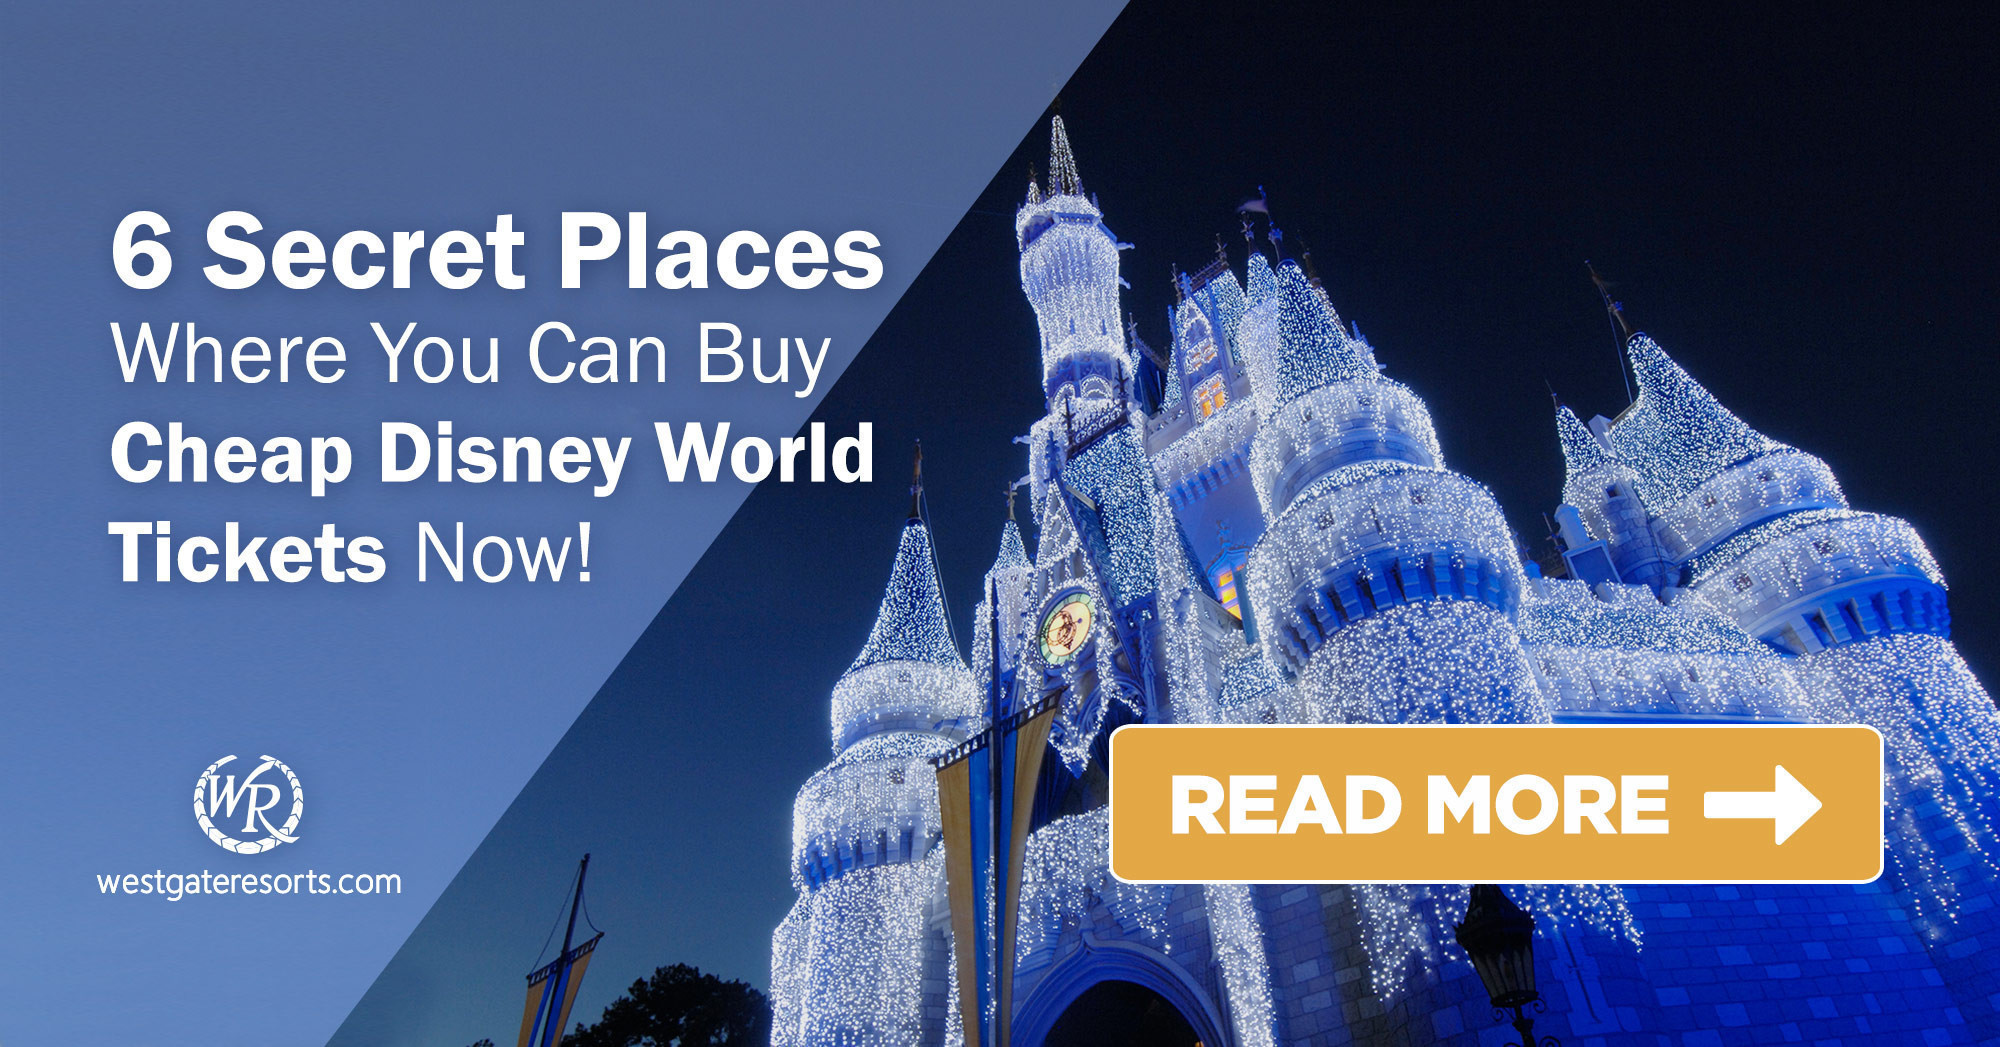 6 Secret Places Where You Can Buy Cheap Disney World Tickets Now!  | Affordable Disney Tickets